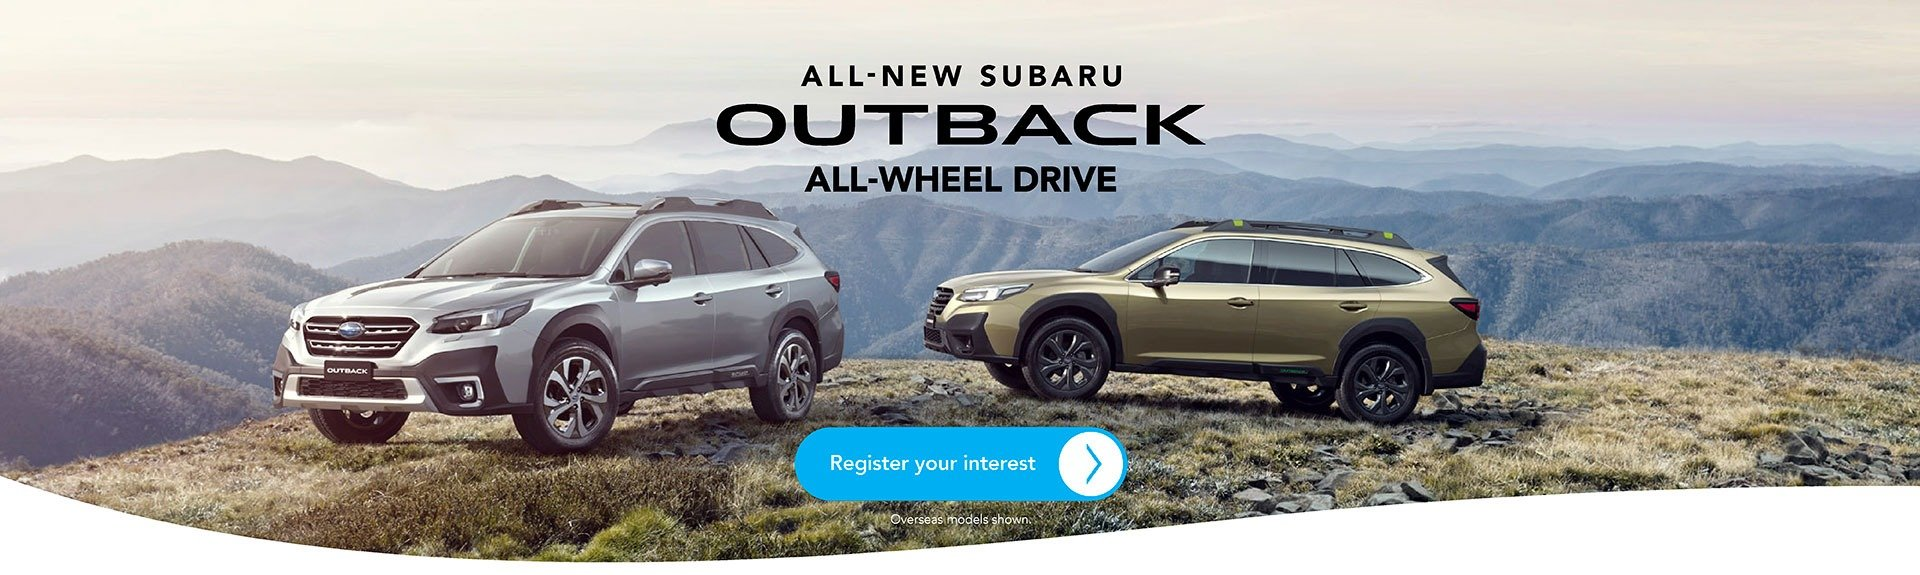 All New Subaru Outback